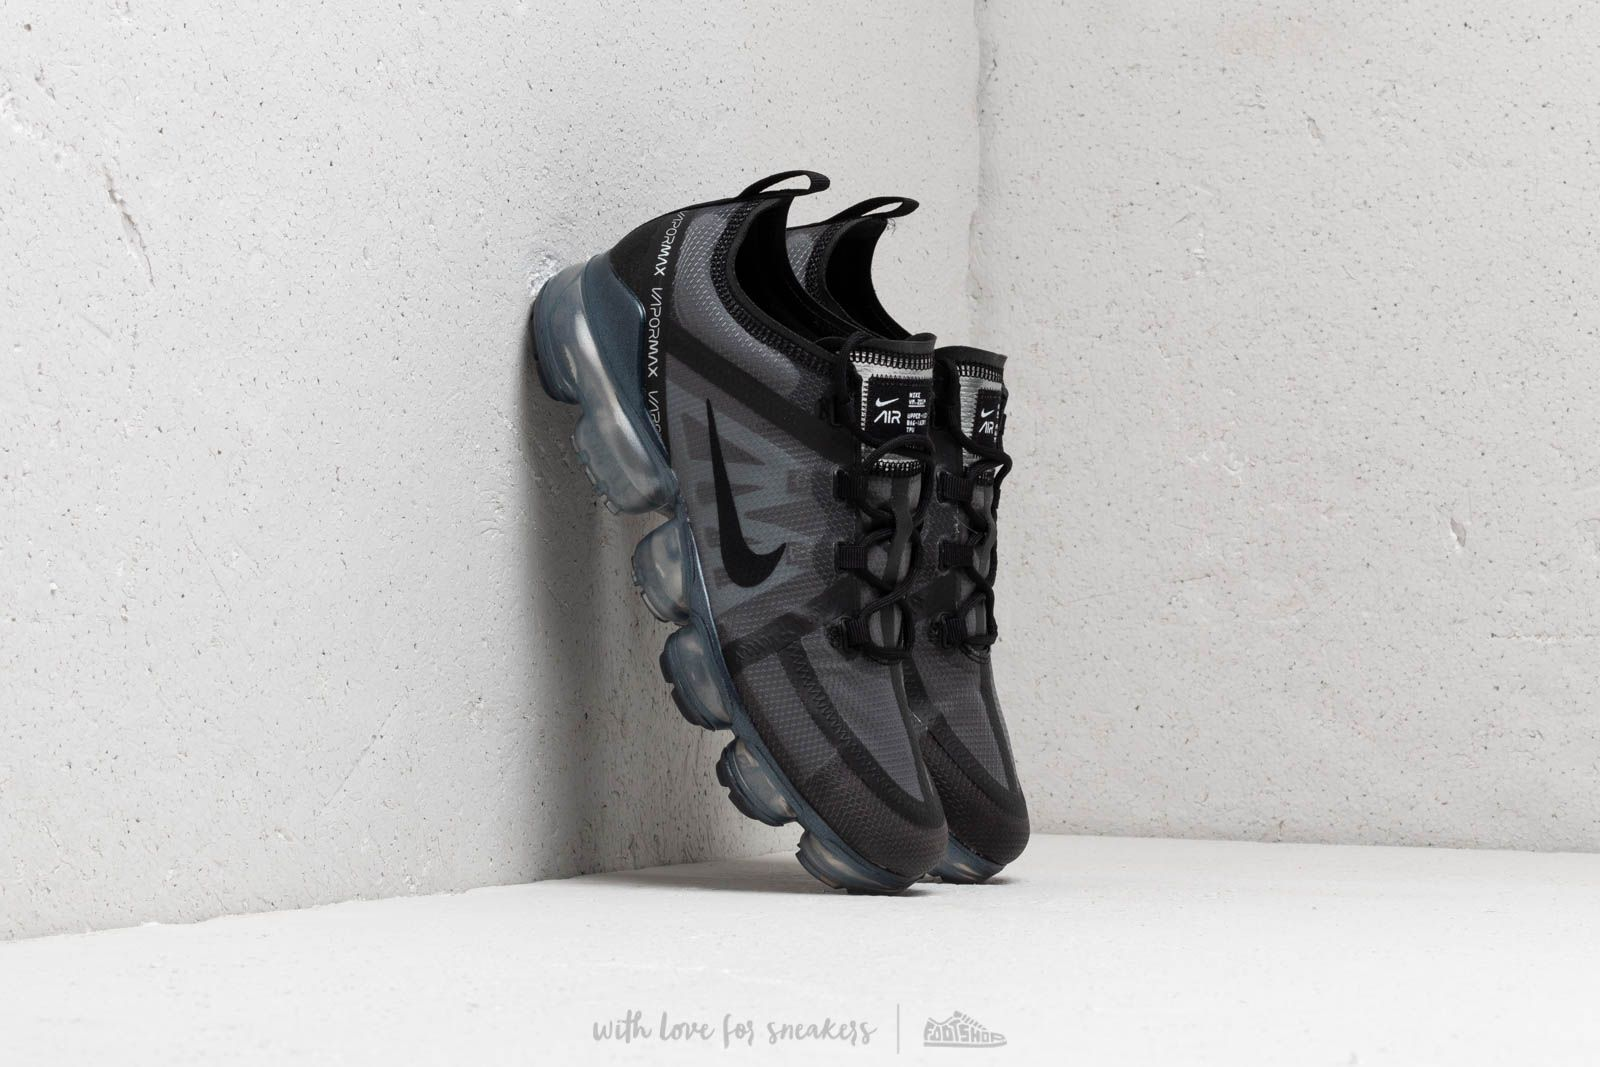 Nike Air Vapormax 2019 Black/ Black-Black at a great price 367 лв купете в Footshop